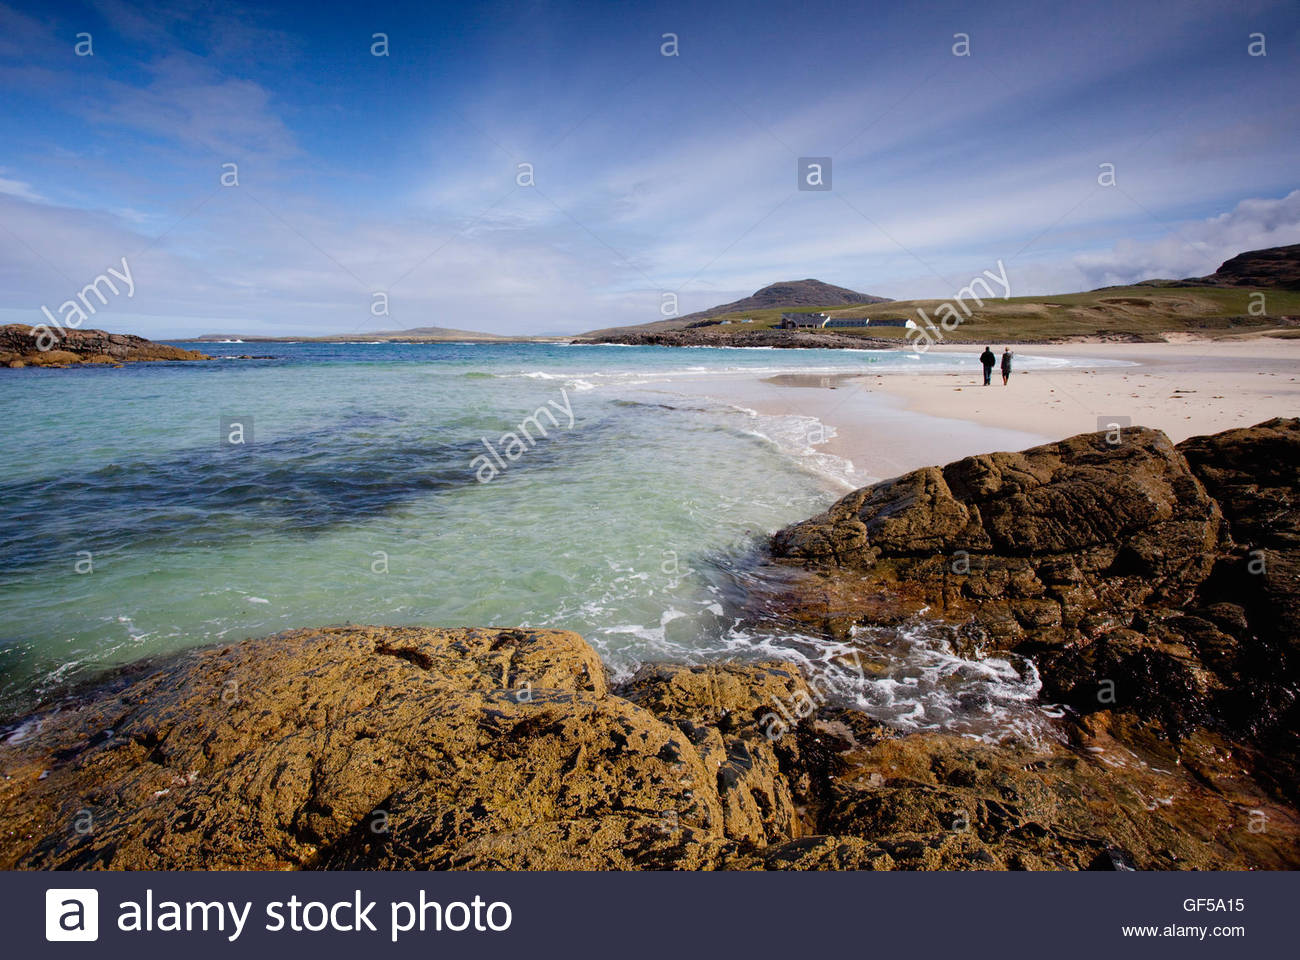 A couple walking on Tangasdale Beach, Isle of Barra, with a view beyond to the Isle of Barra Hotel, Outer Hebrides. - Stock Image